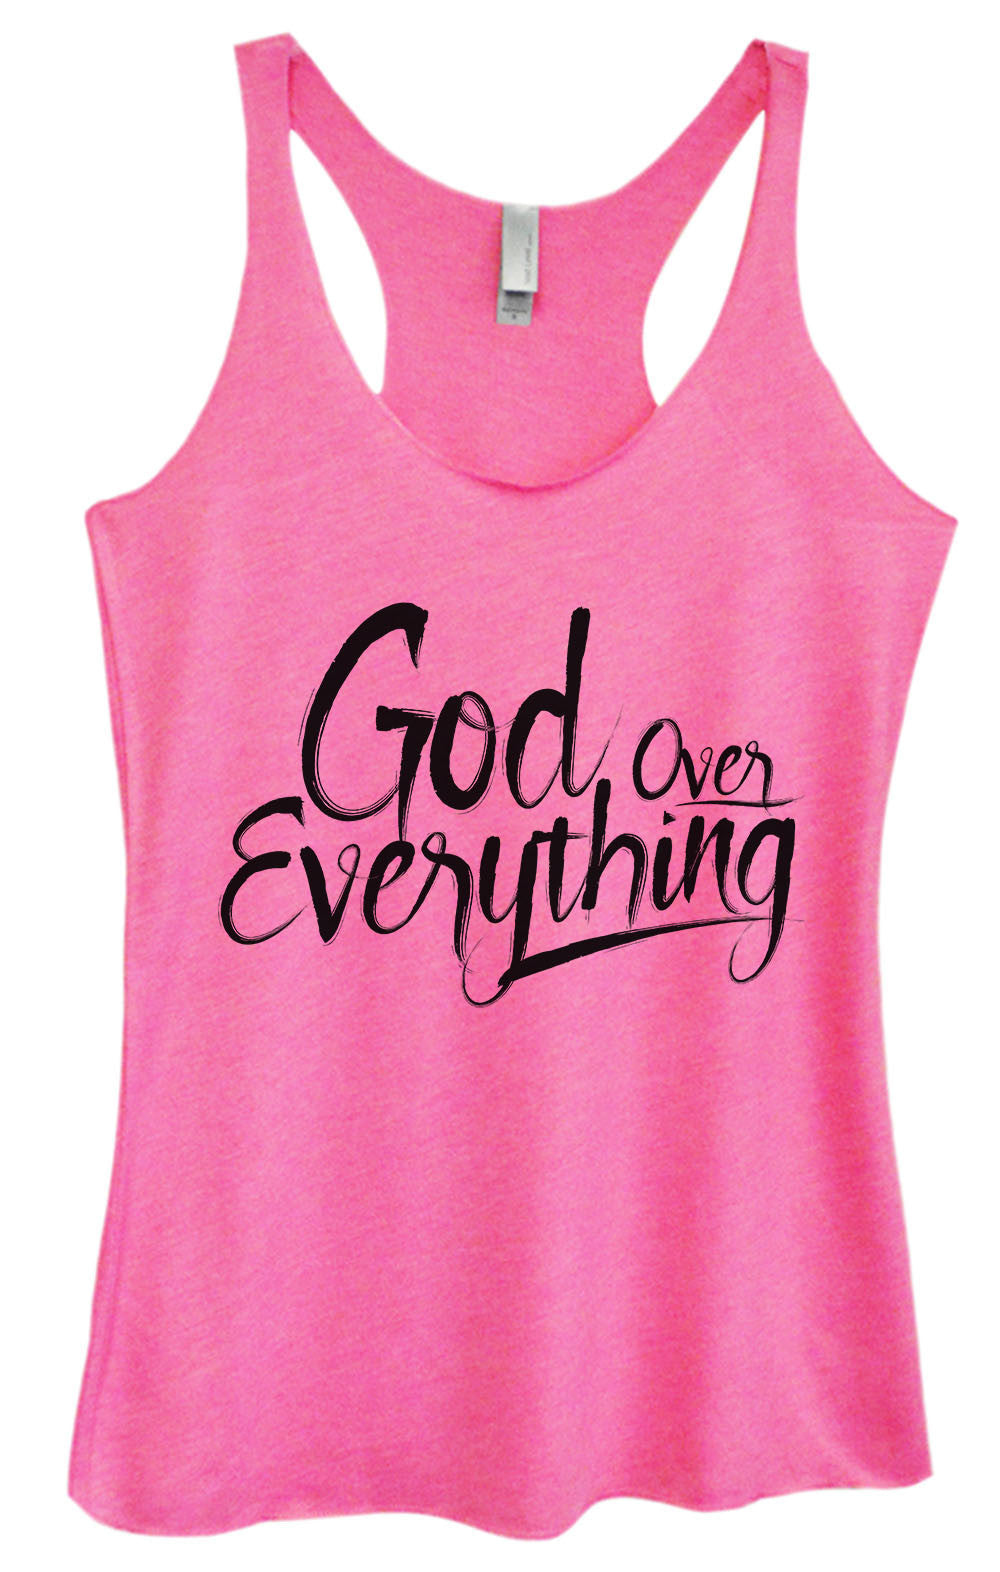 Womens Fashion Triblend Tank Top - God Everything Over - Tri-1588 - Funny Shirts Tank Tops Burnouts and Triblends  - 3